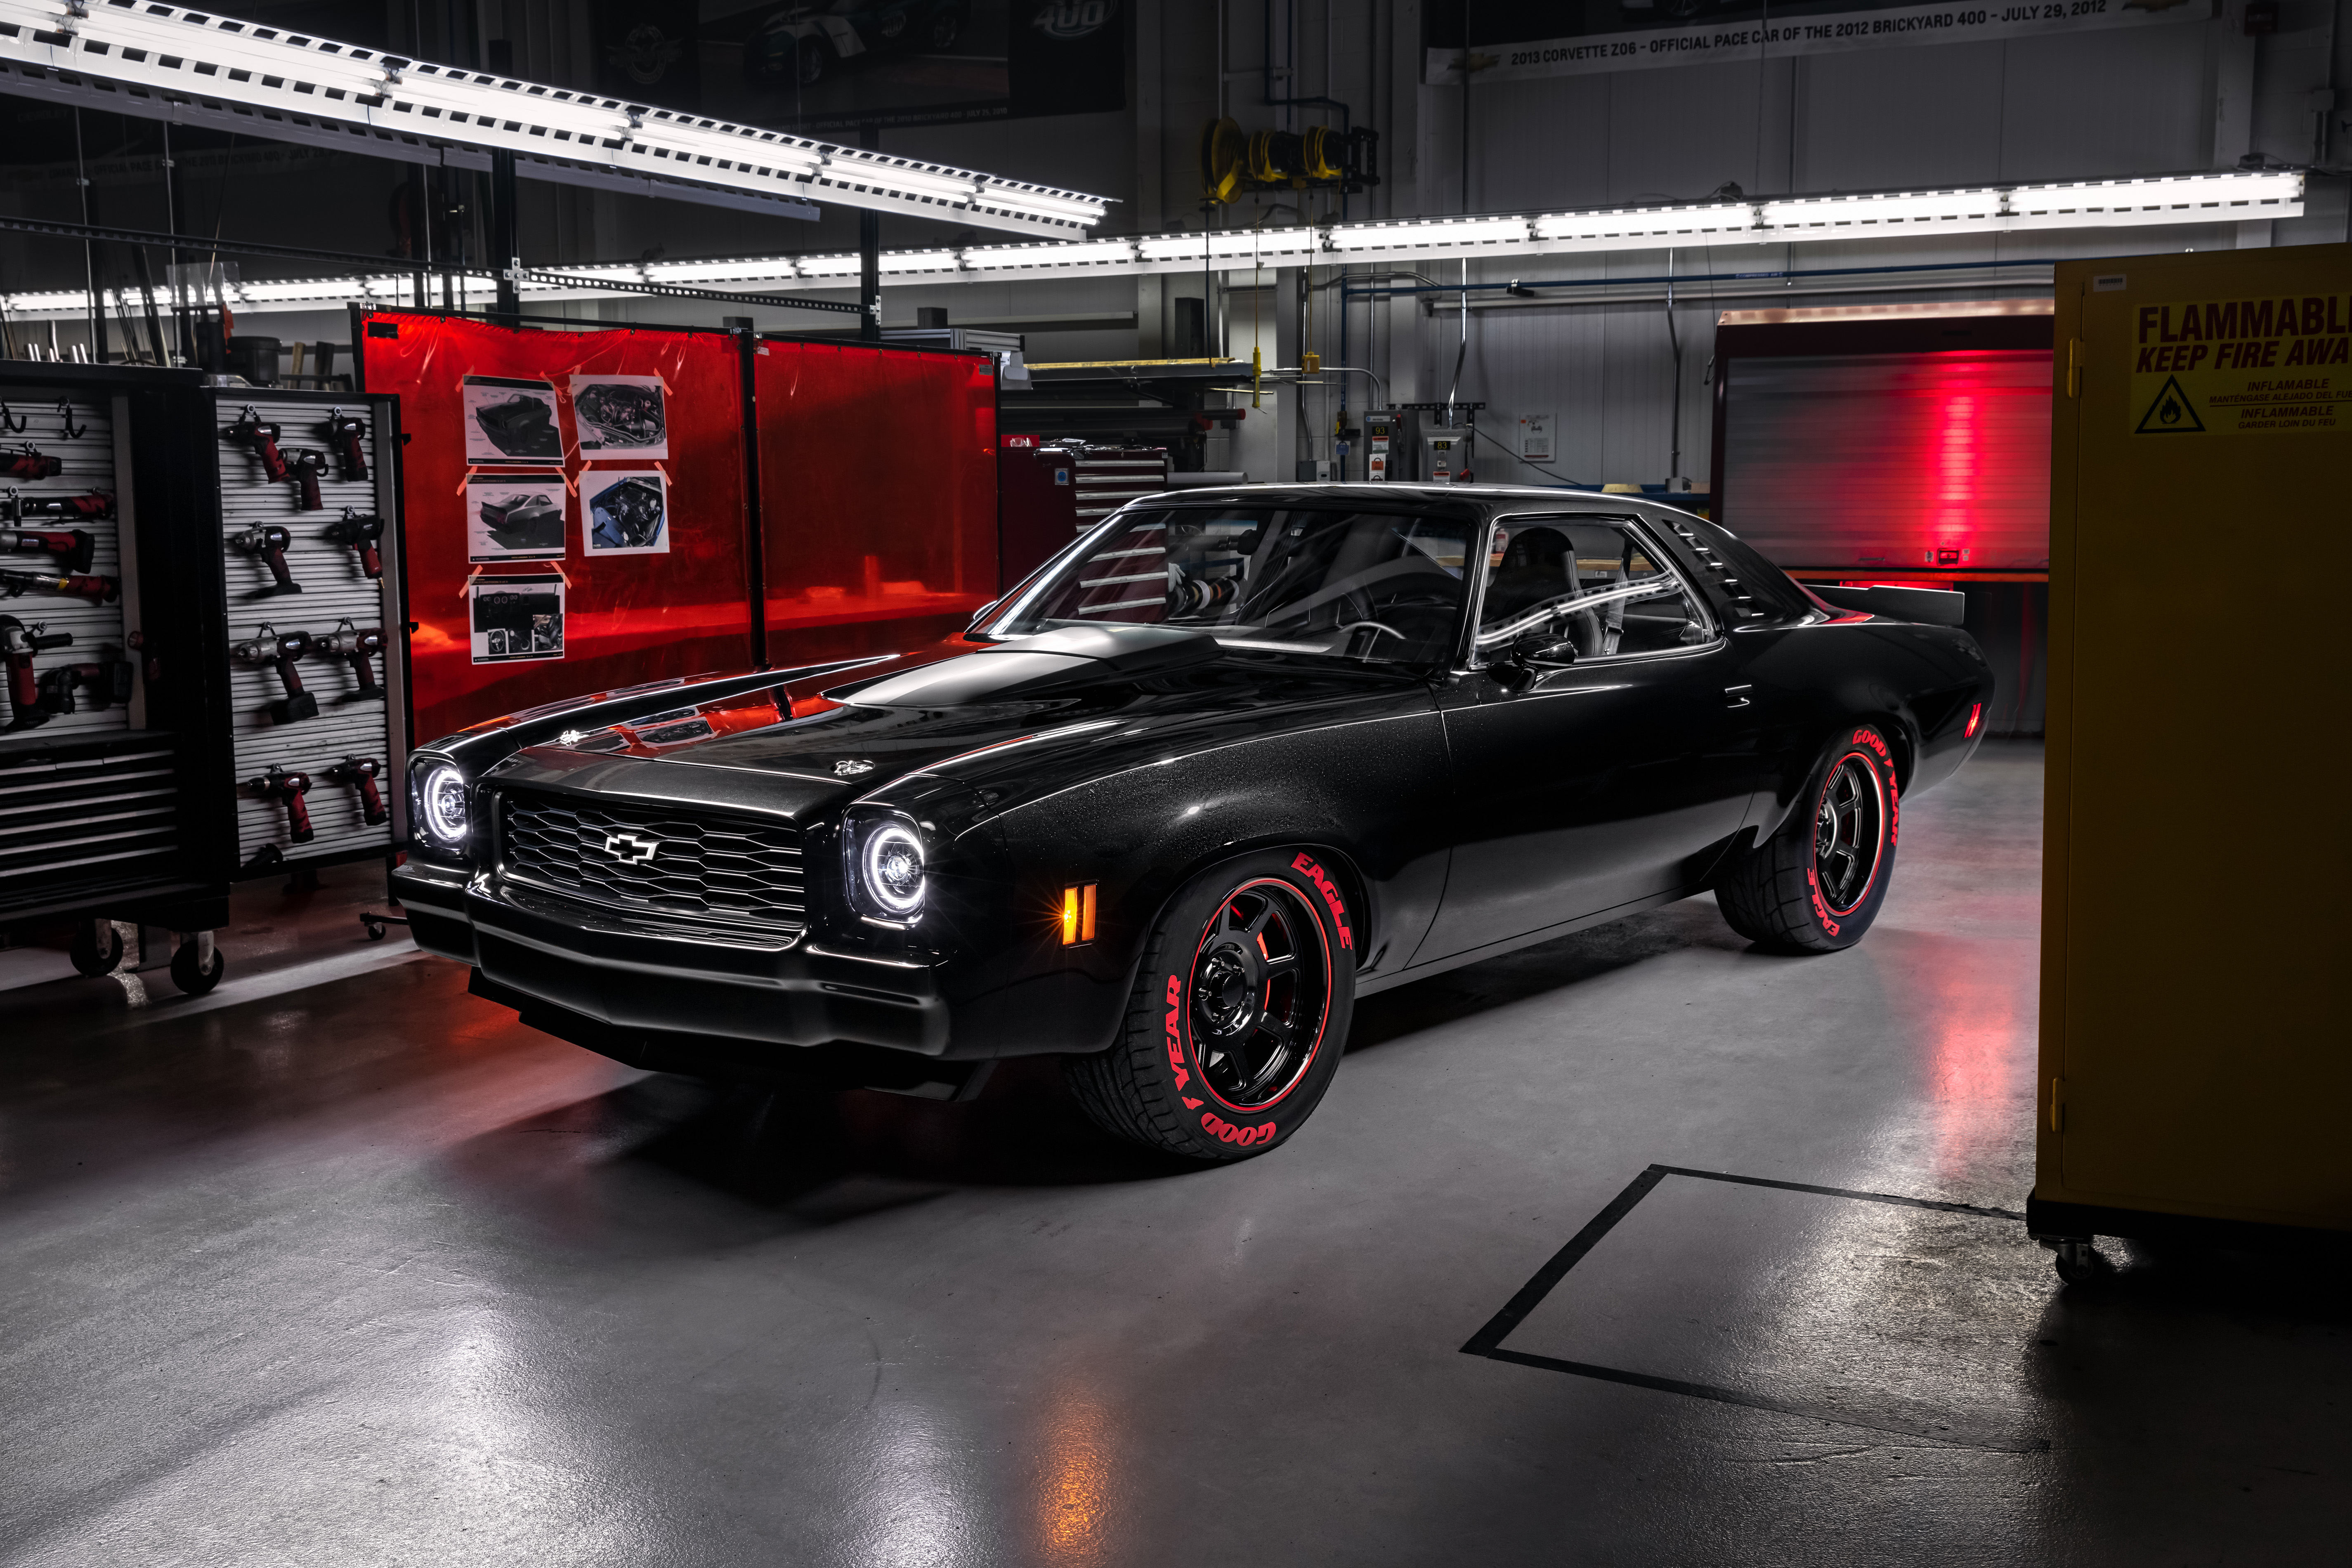 Chevrolet S New Crate Engines Showcased In Vintage Concepts